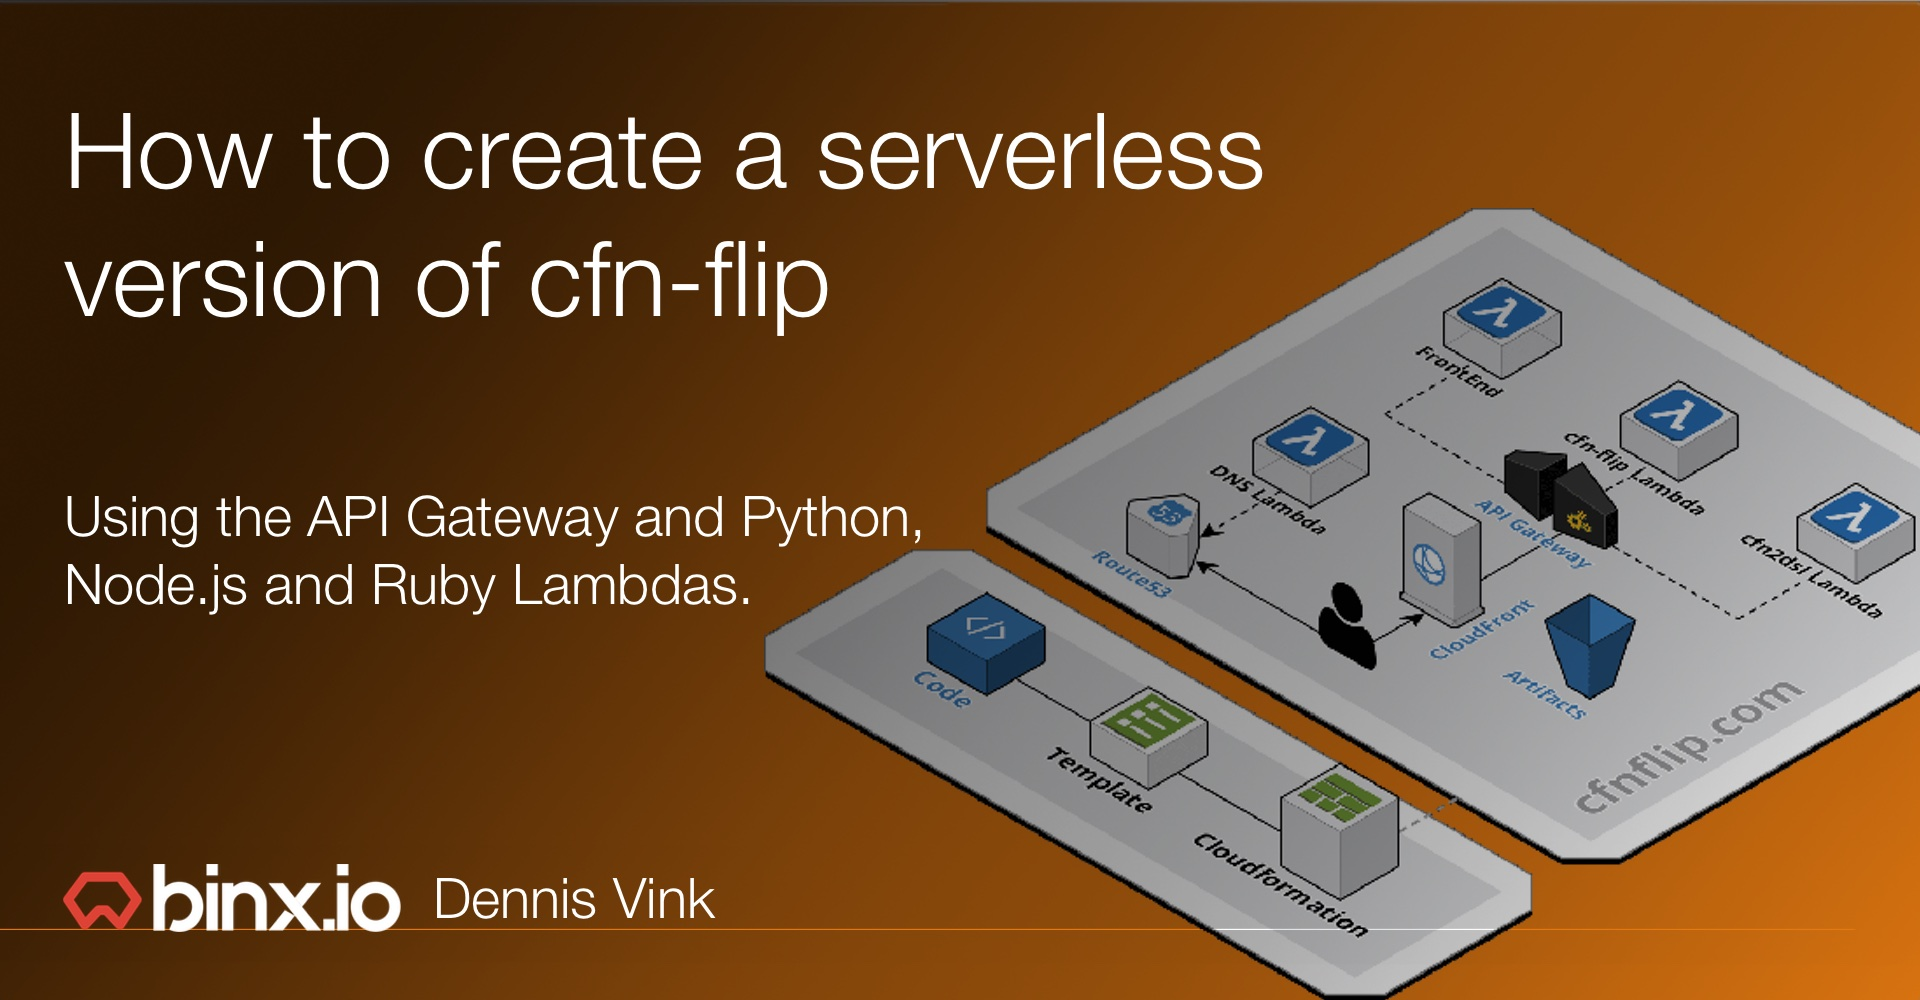 How we created a serverless version of cfn-flip